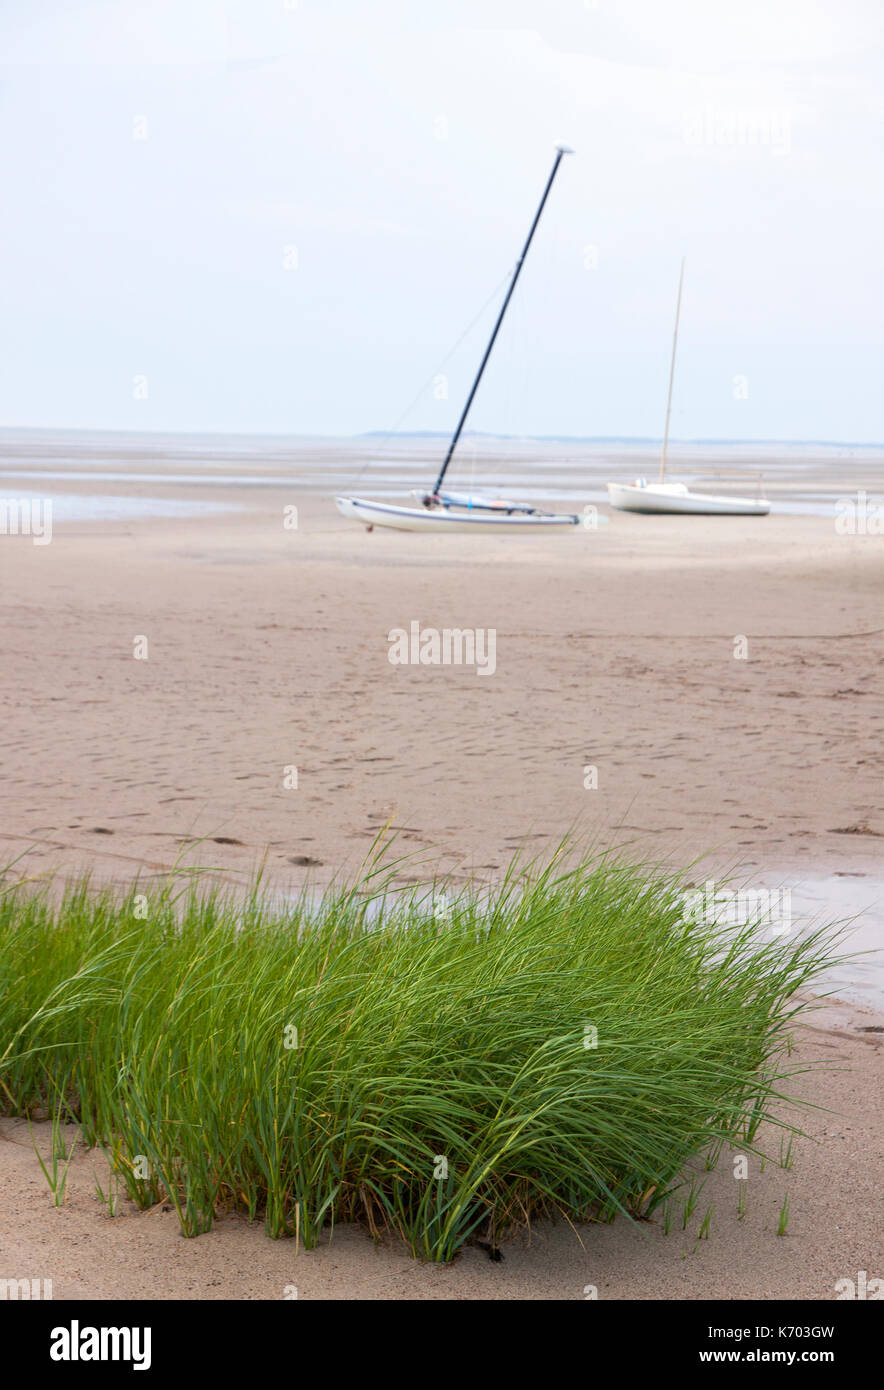 Sailboats grounded in the sand at low tide with seagrass in the foreground.  Eastham, Massachusetts, Cape Cod, USA. - Stock Image